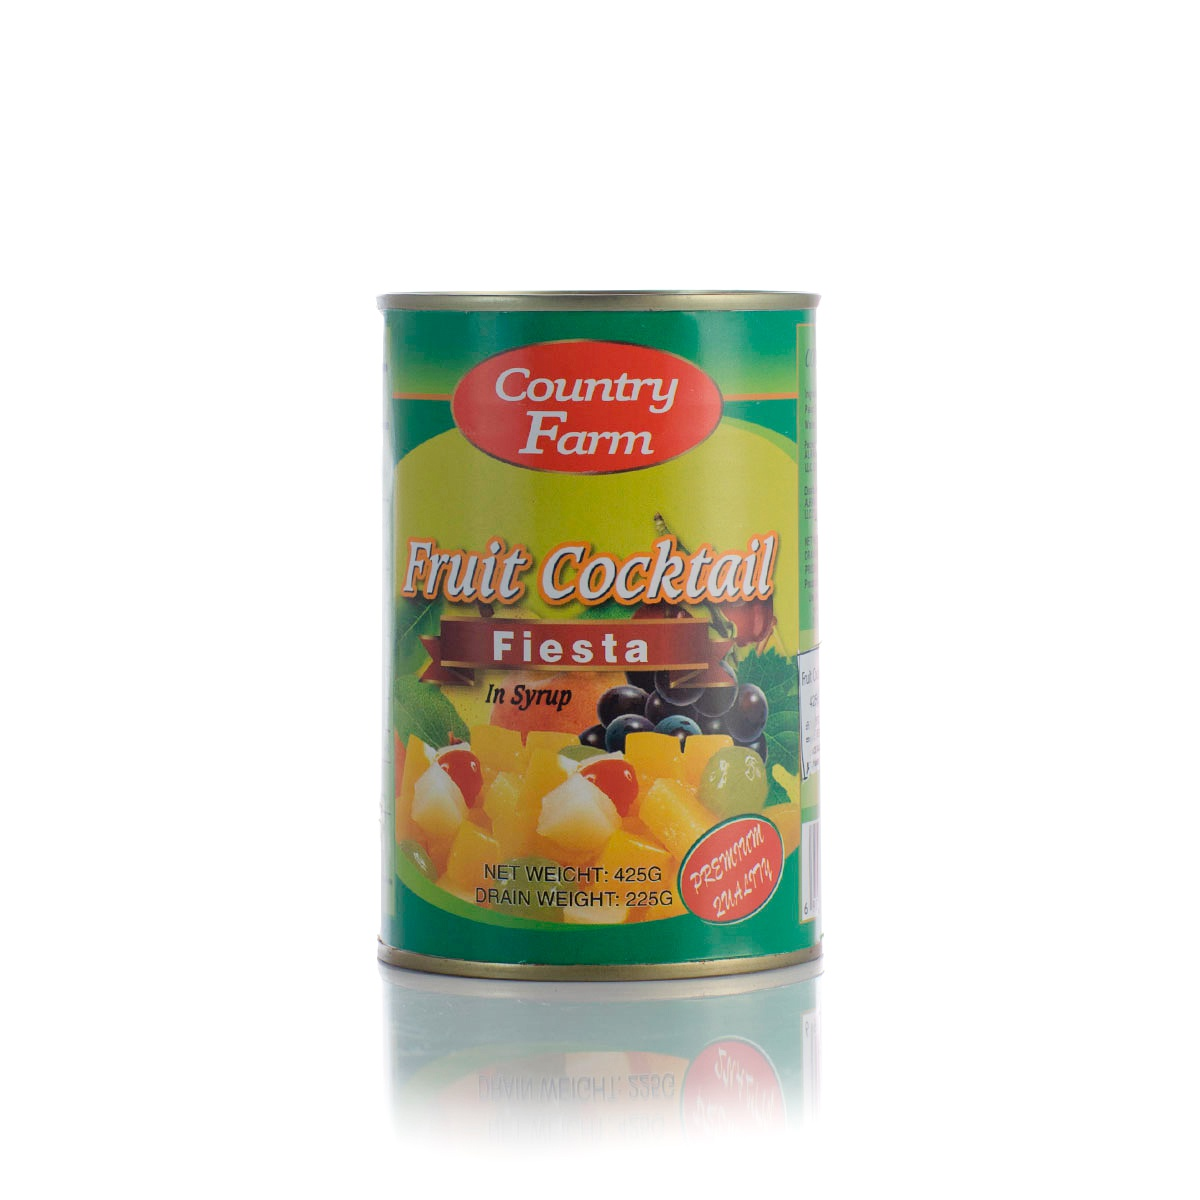 Country Farm Fruit Cocktail 425G - in Sri Lanka